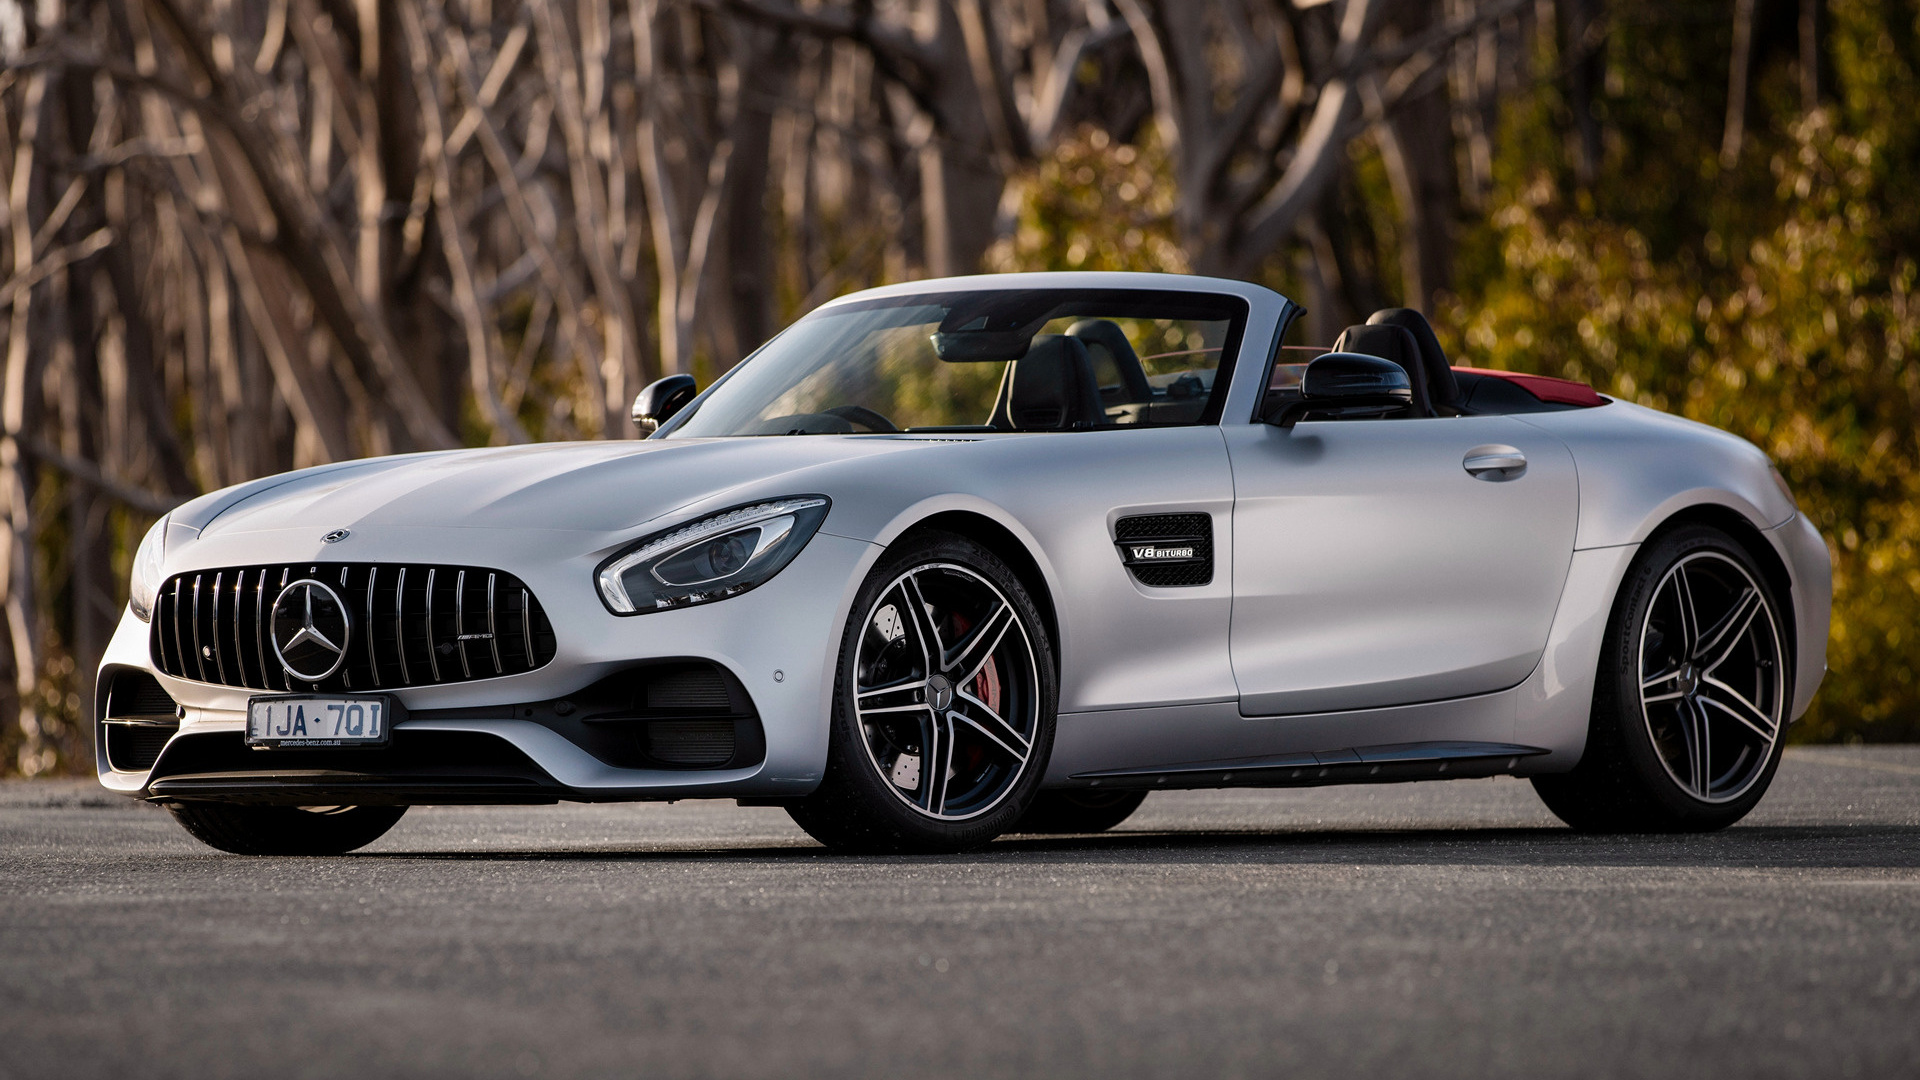 https://www.carpixel.net/w/dbfbf4d1133900c76759766541f726b5/mercedes-amg-gt-c-roadster-wallpaper-hd-75387.jpg